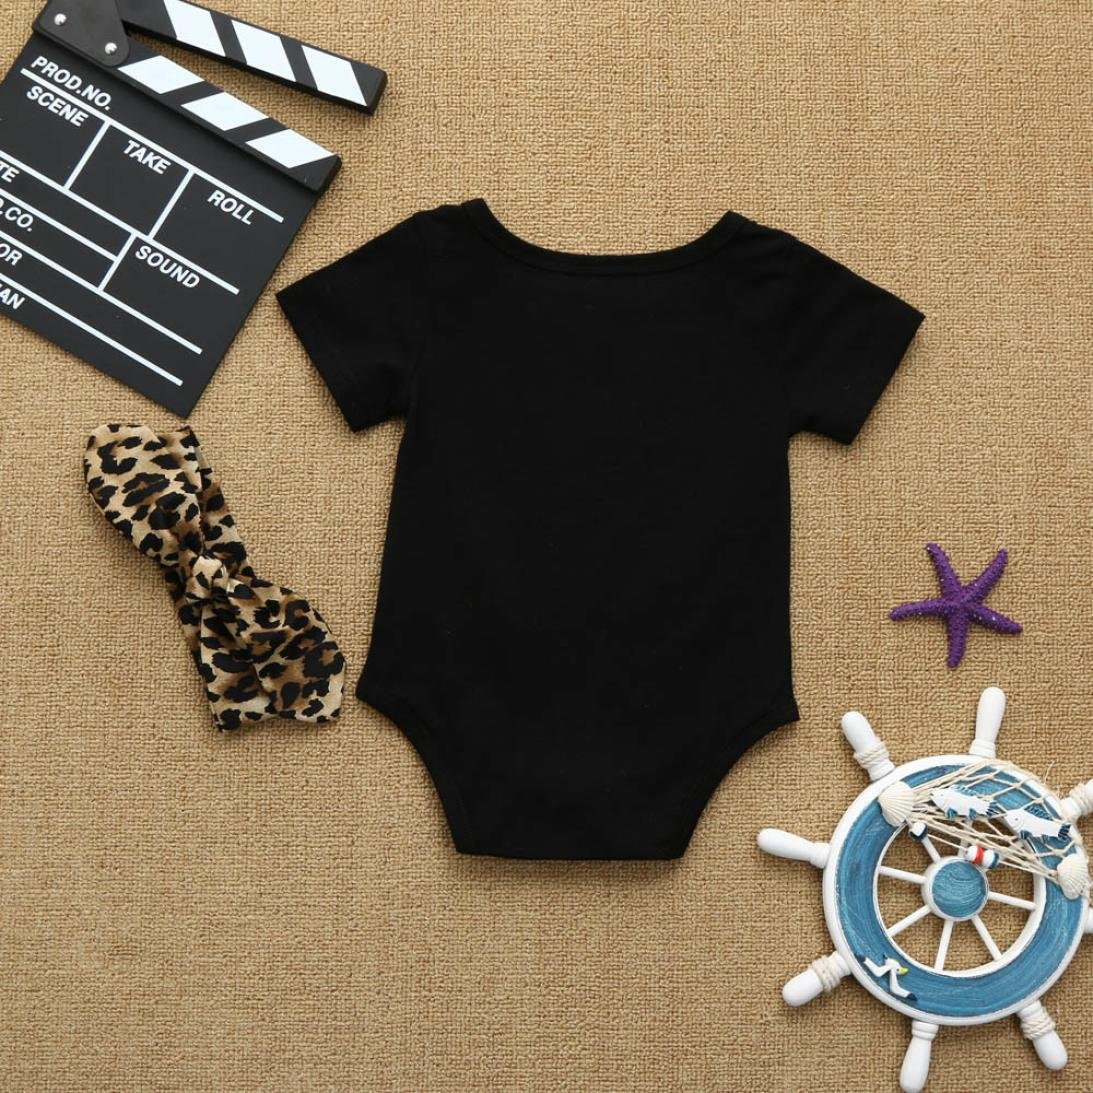 67e2cb562b1 Amazon.com: Pollyhb Baby Girl Romper, Newborn Infant Letter  Jumpsuit+Leopard Headband Outfits Clothes Set(0-18 Months): Clothing